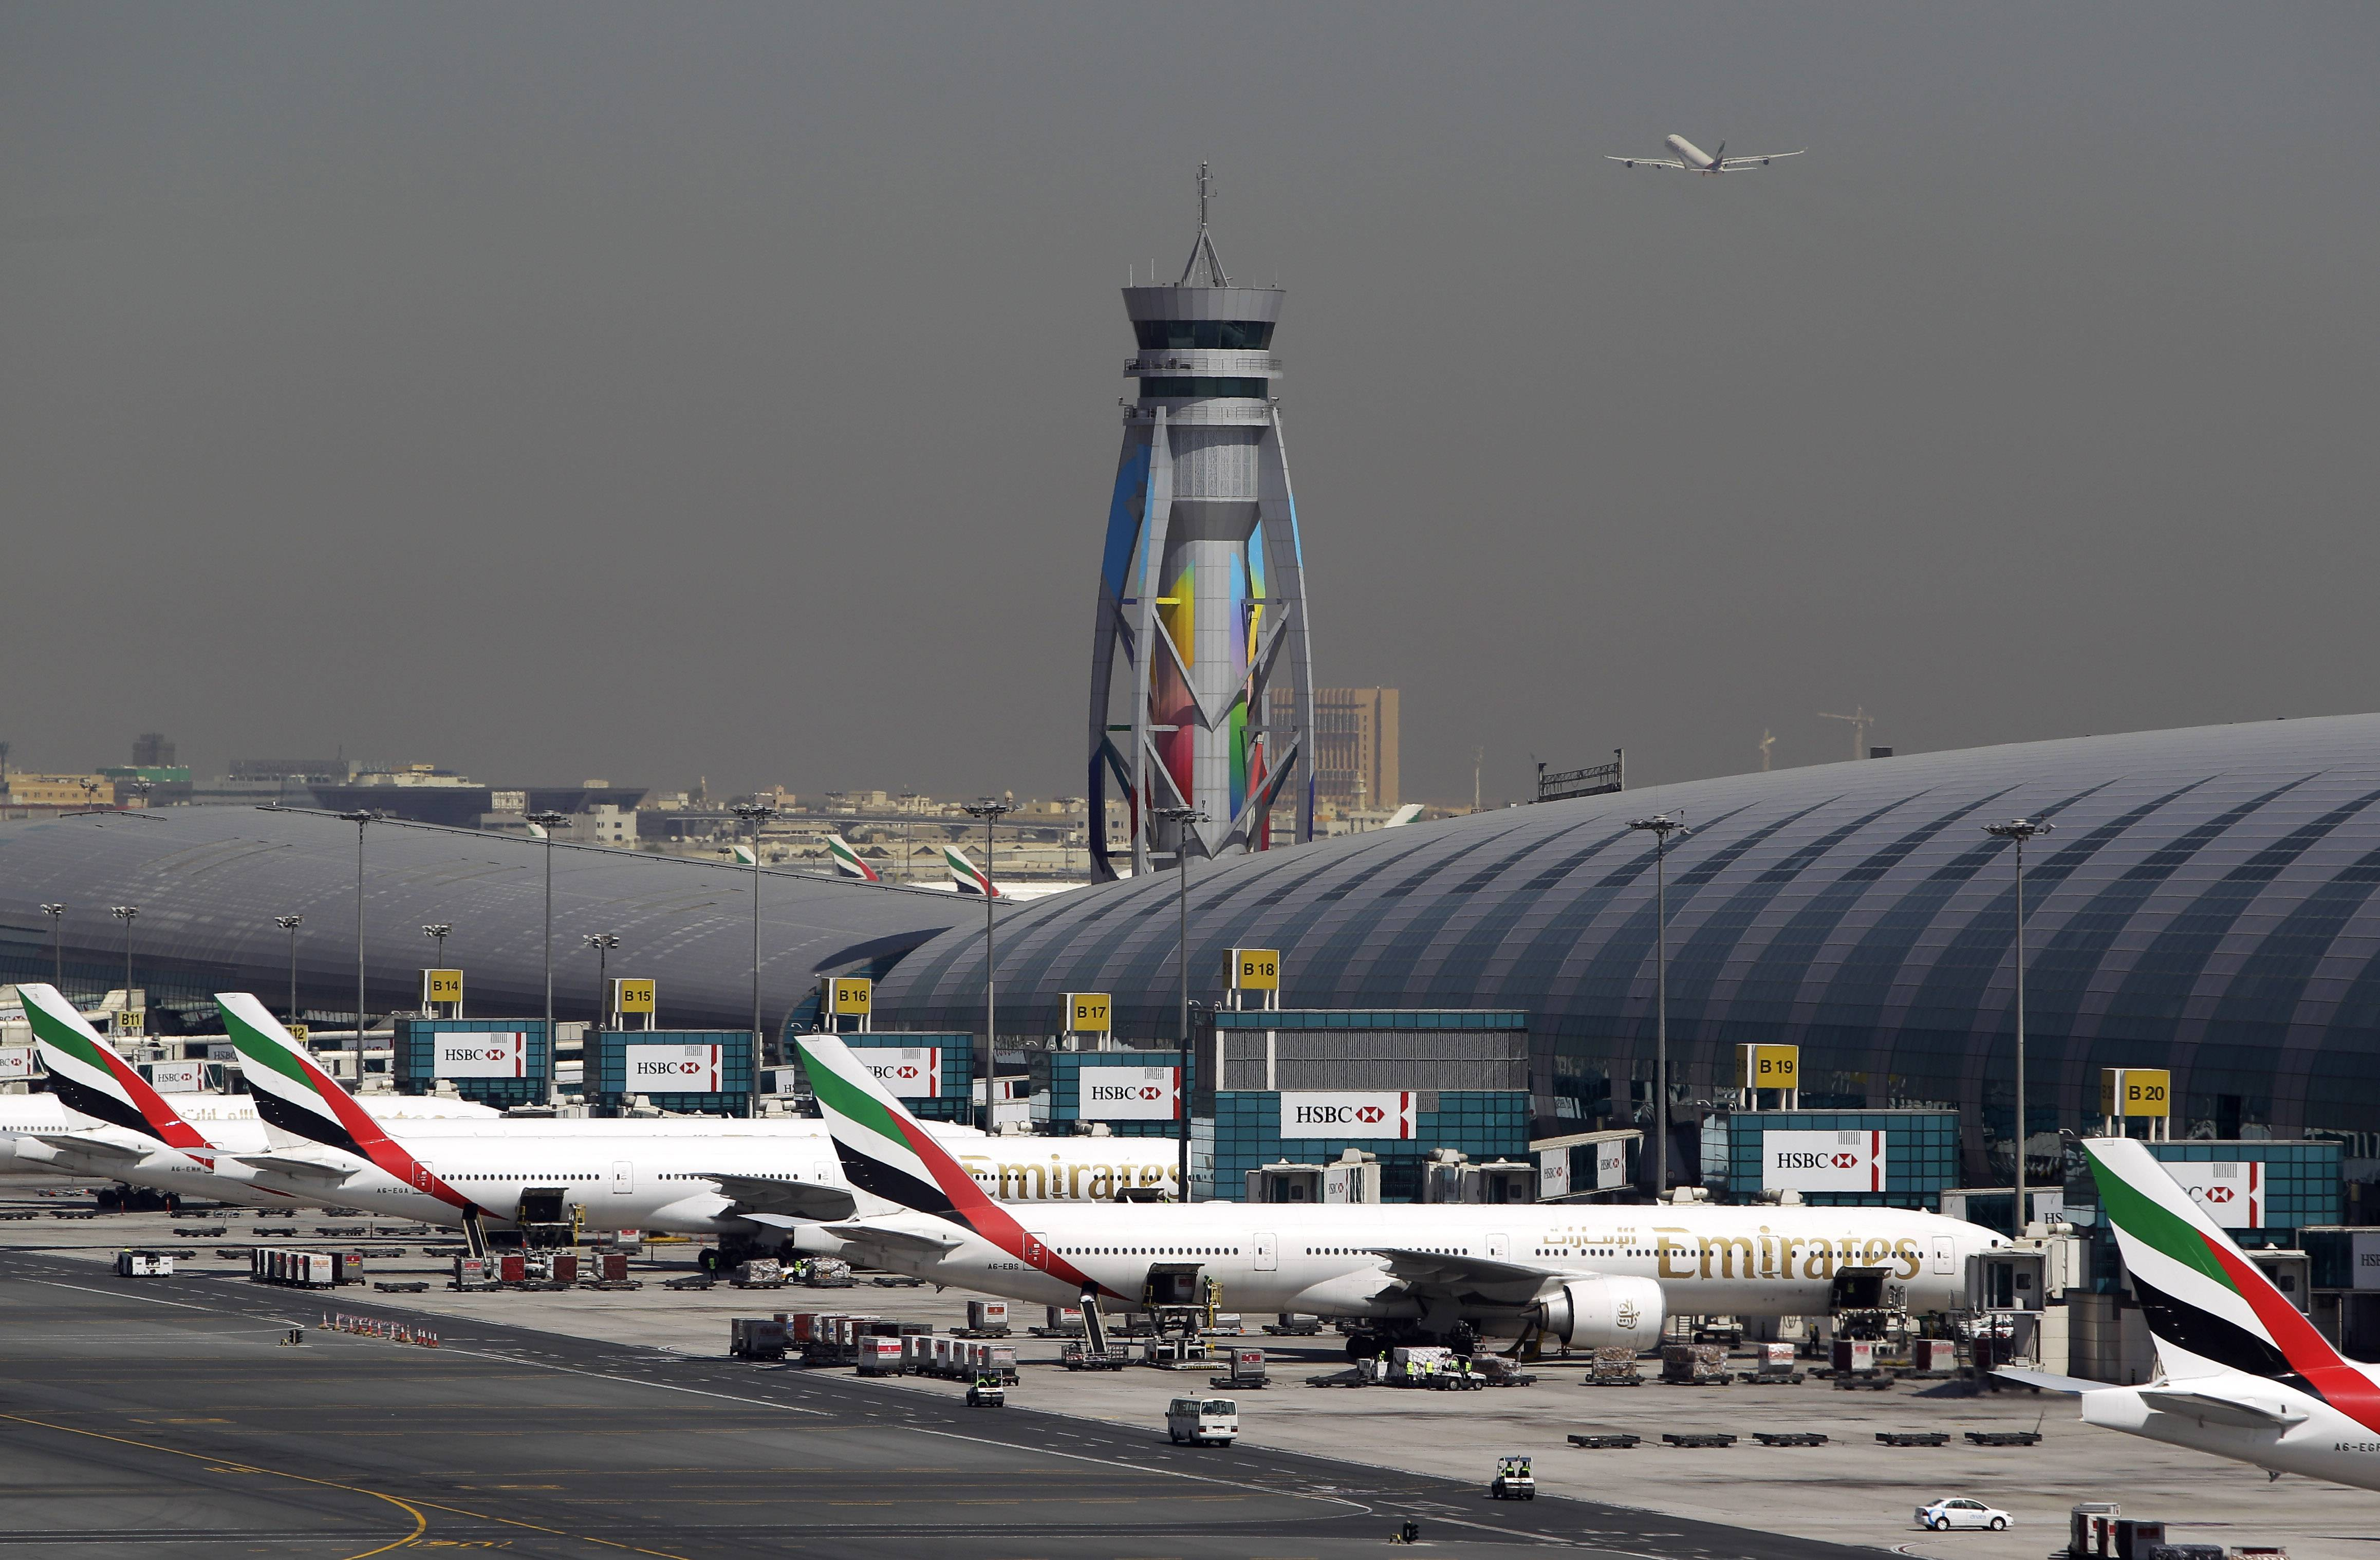 Emirates passenger planes parked at their gates at Dubai Airport in United Arab Emirates. Now that he's had a taste of running the world's busiest air hub for international passengers, the airport's CEO, Paul Griffiths, is determined to hang on to the honor while setting his sights on an even bigger prize: beating Atlanta for the title of busiest airport on the planet.